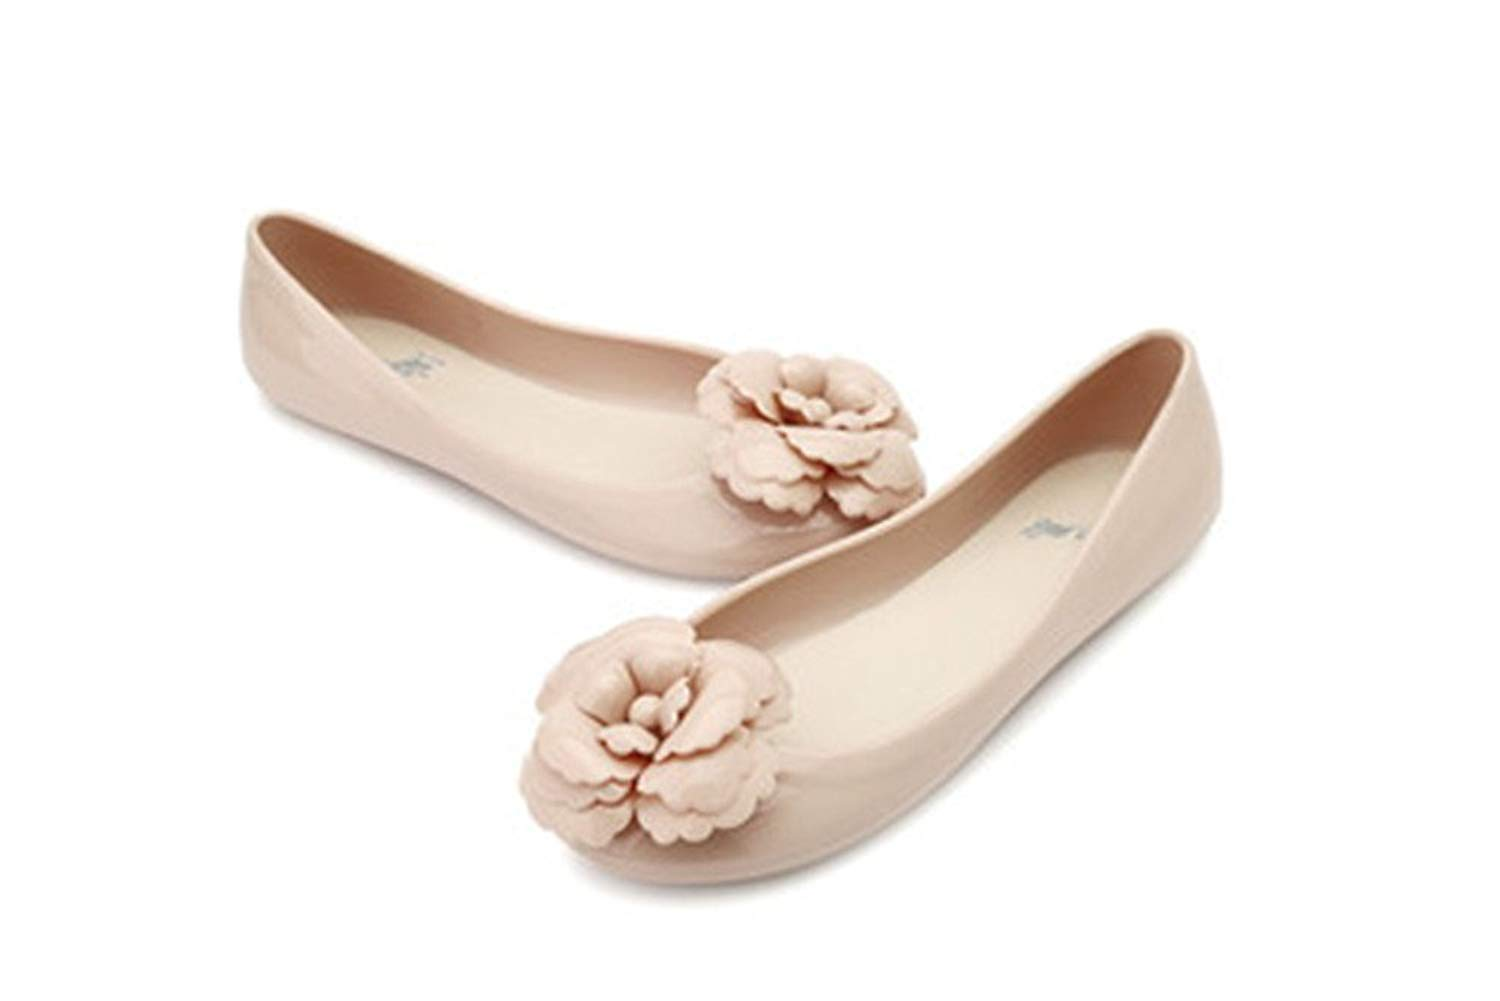 97bbf9712 Get Quotations · excellent.c Jelly Sandals Women Summer Shoes Jelly Shoes  Waterproof Shoes